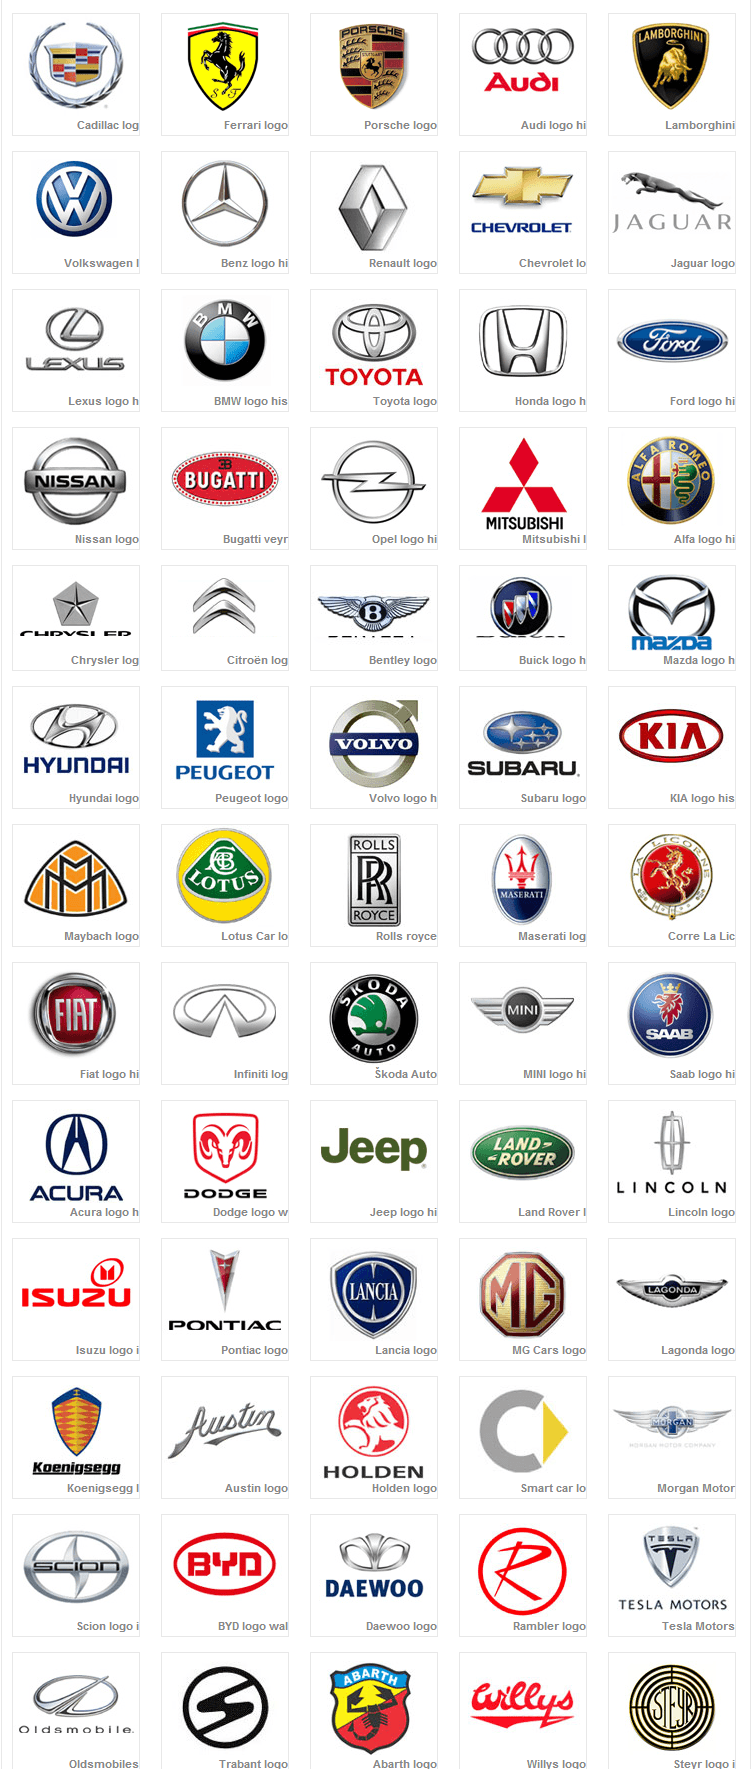 Exotic Car Brand Logo - Car Logos inspiration for logo design. car based, not driving lesson ...